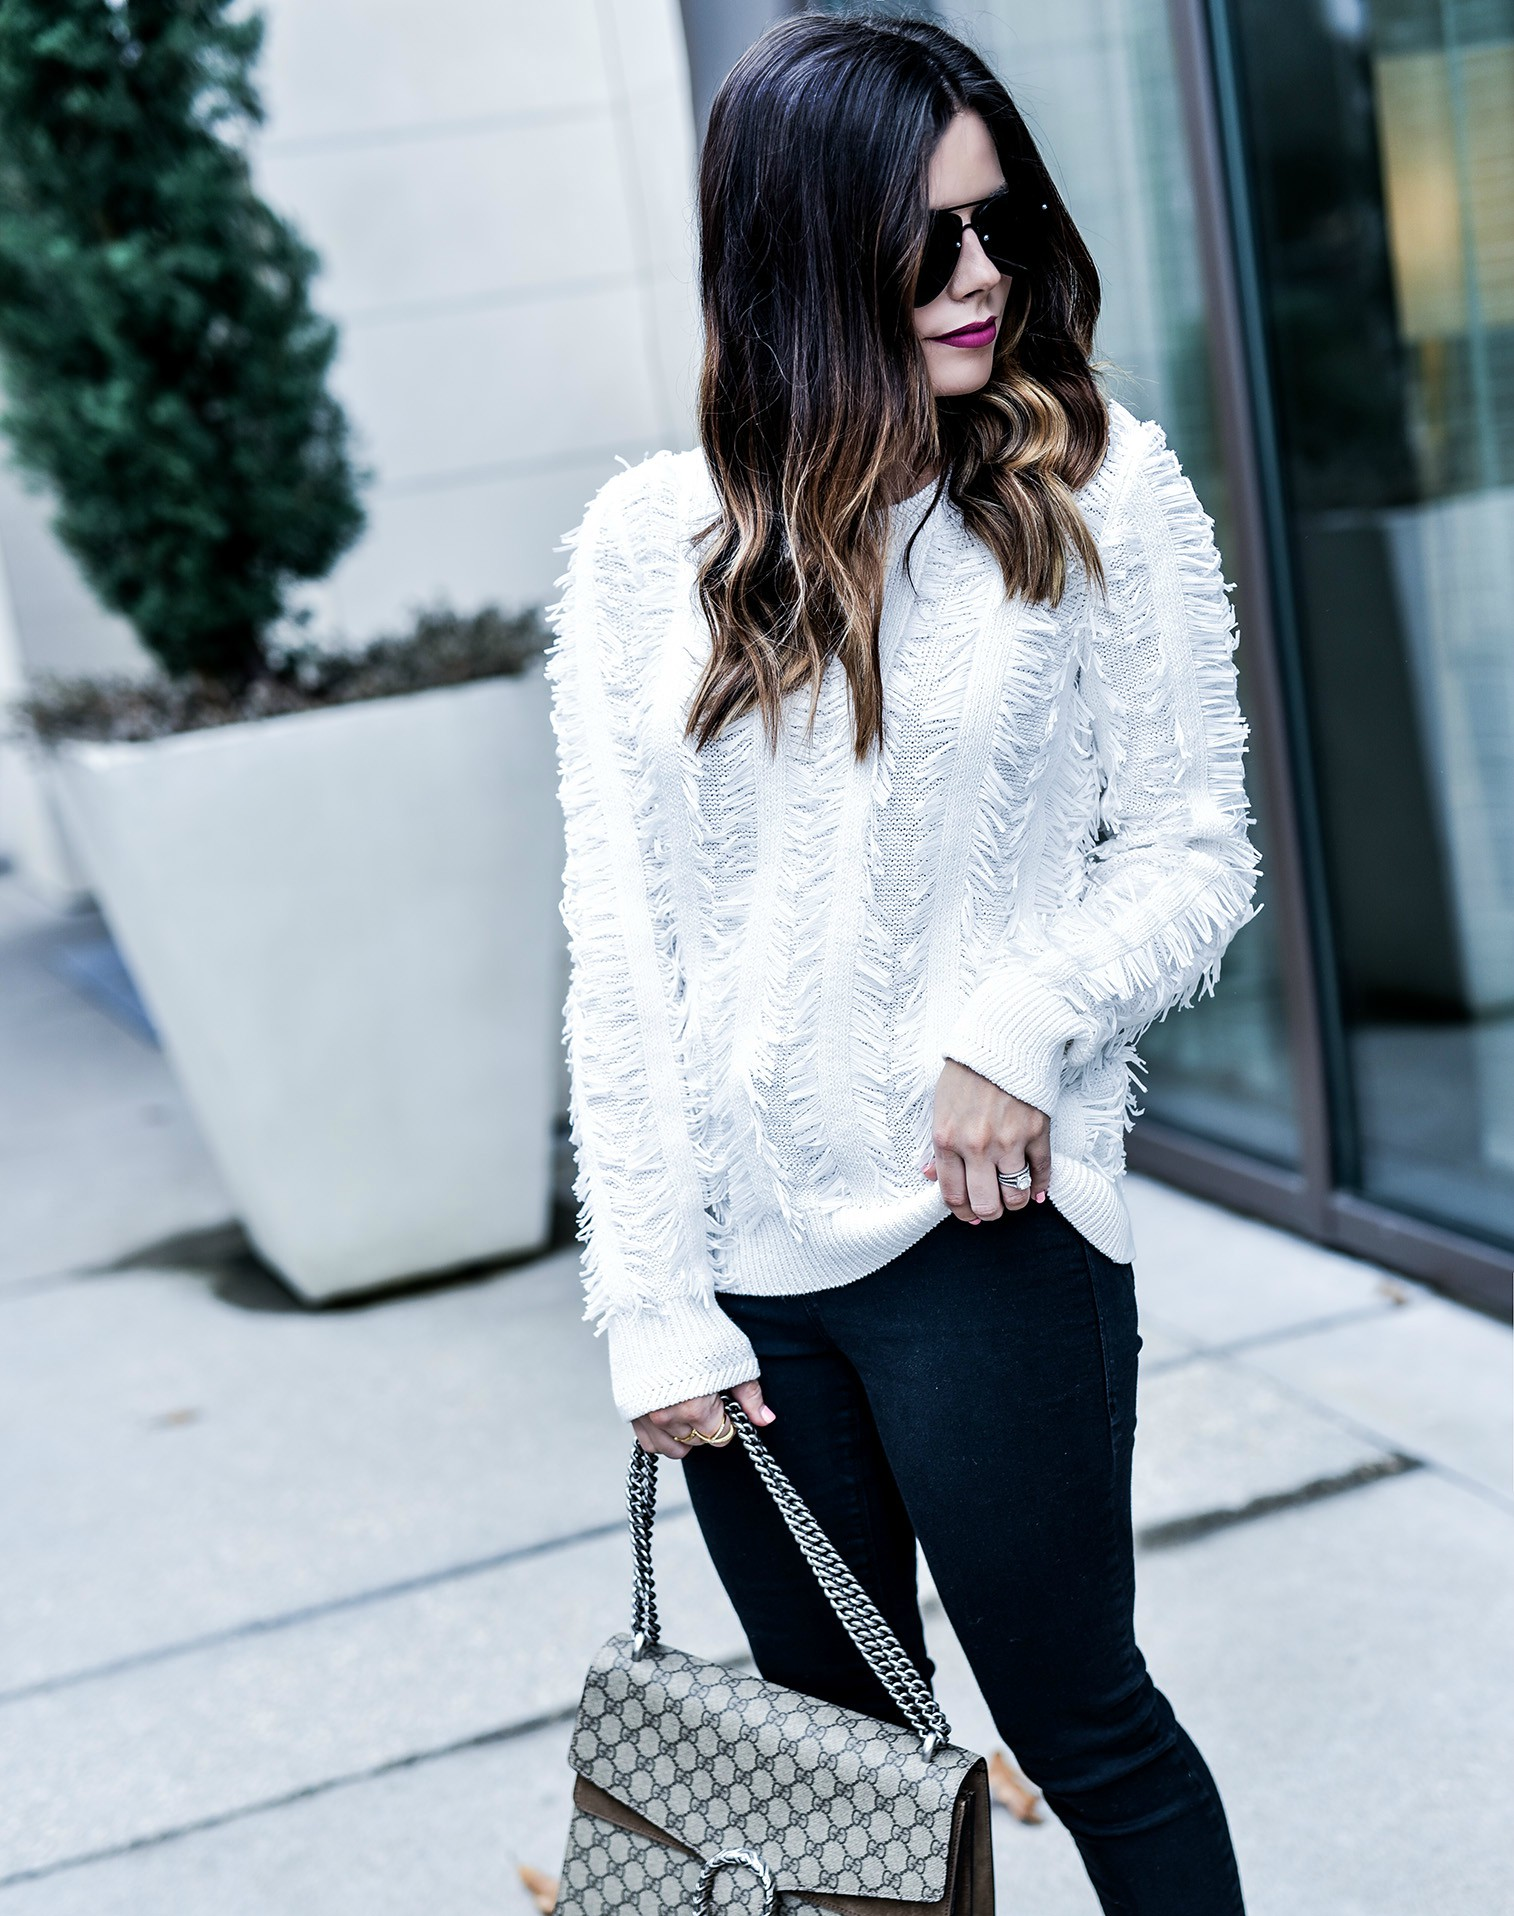 Houston fashion and style blogger Tiffany Jais wearing a white fringe sweater by Banana Republic and a Gucci Dionysus bag, click to read more | What's trending in women's fashion